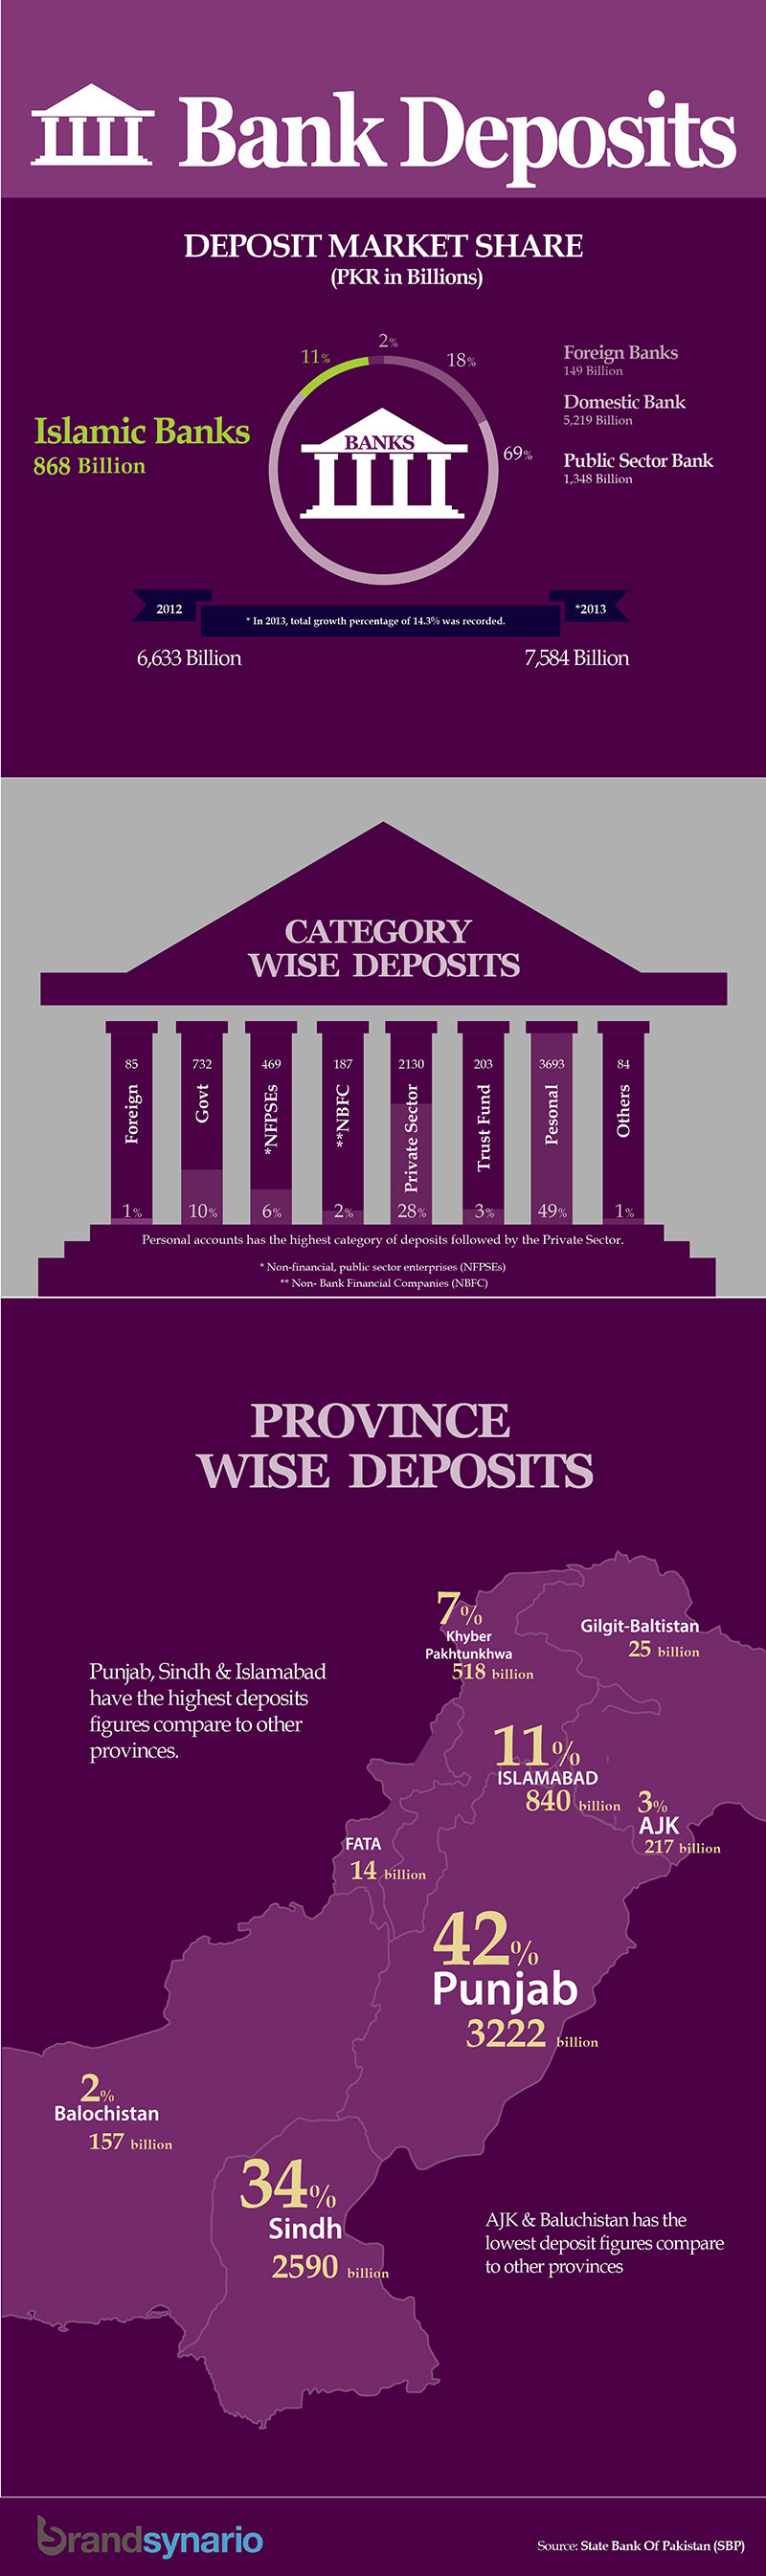 Bank-Deposits-from-Jan-Dec-2013-in-Pakistan